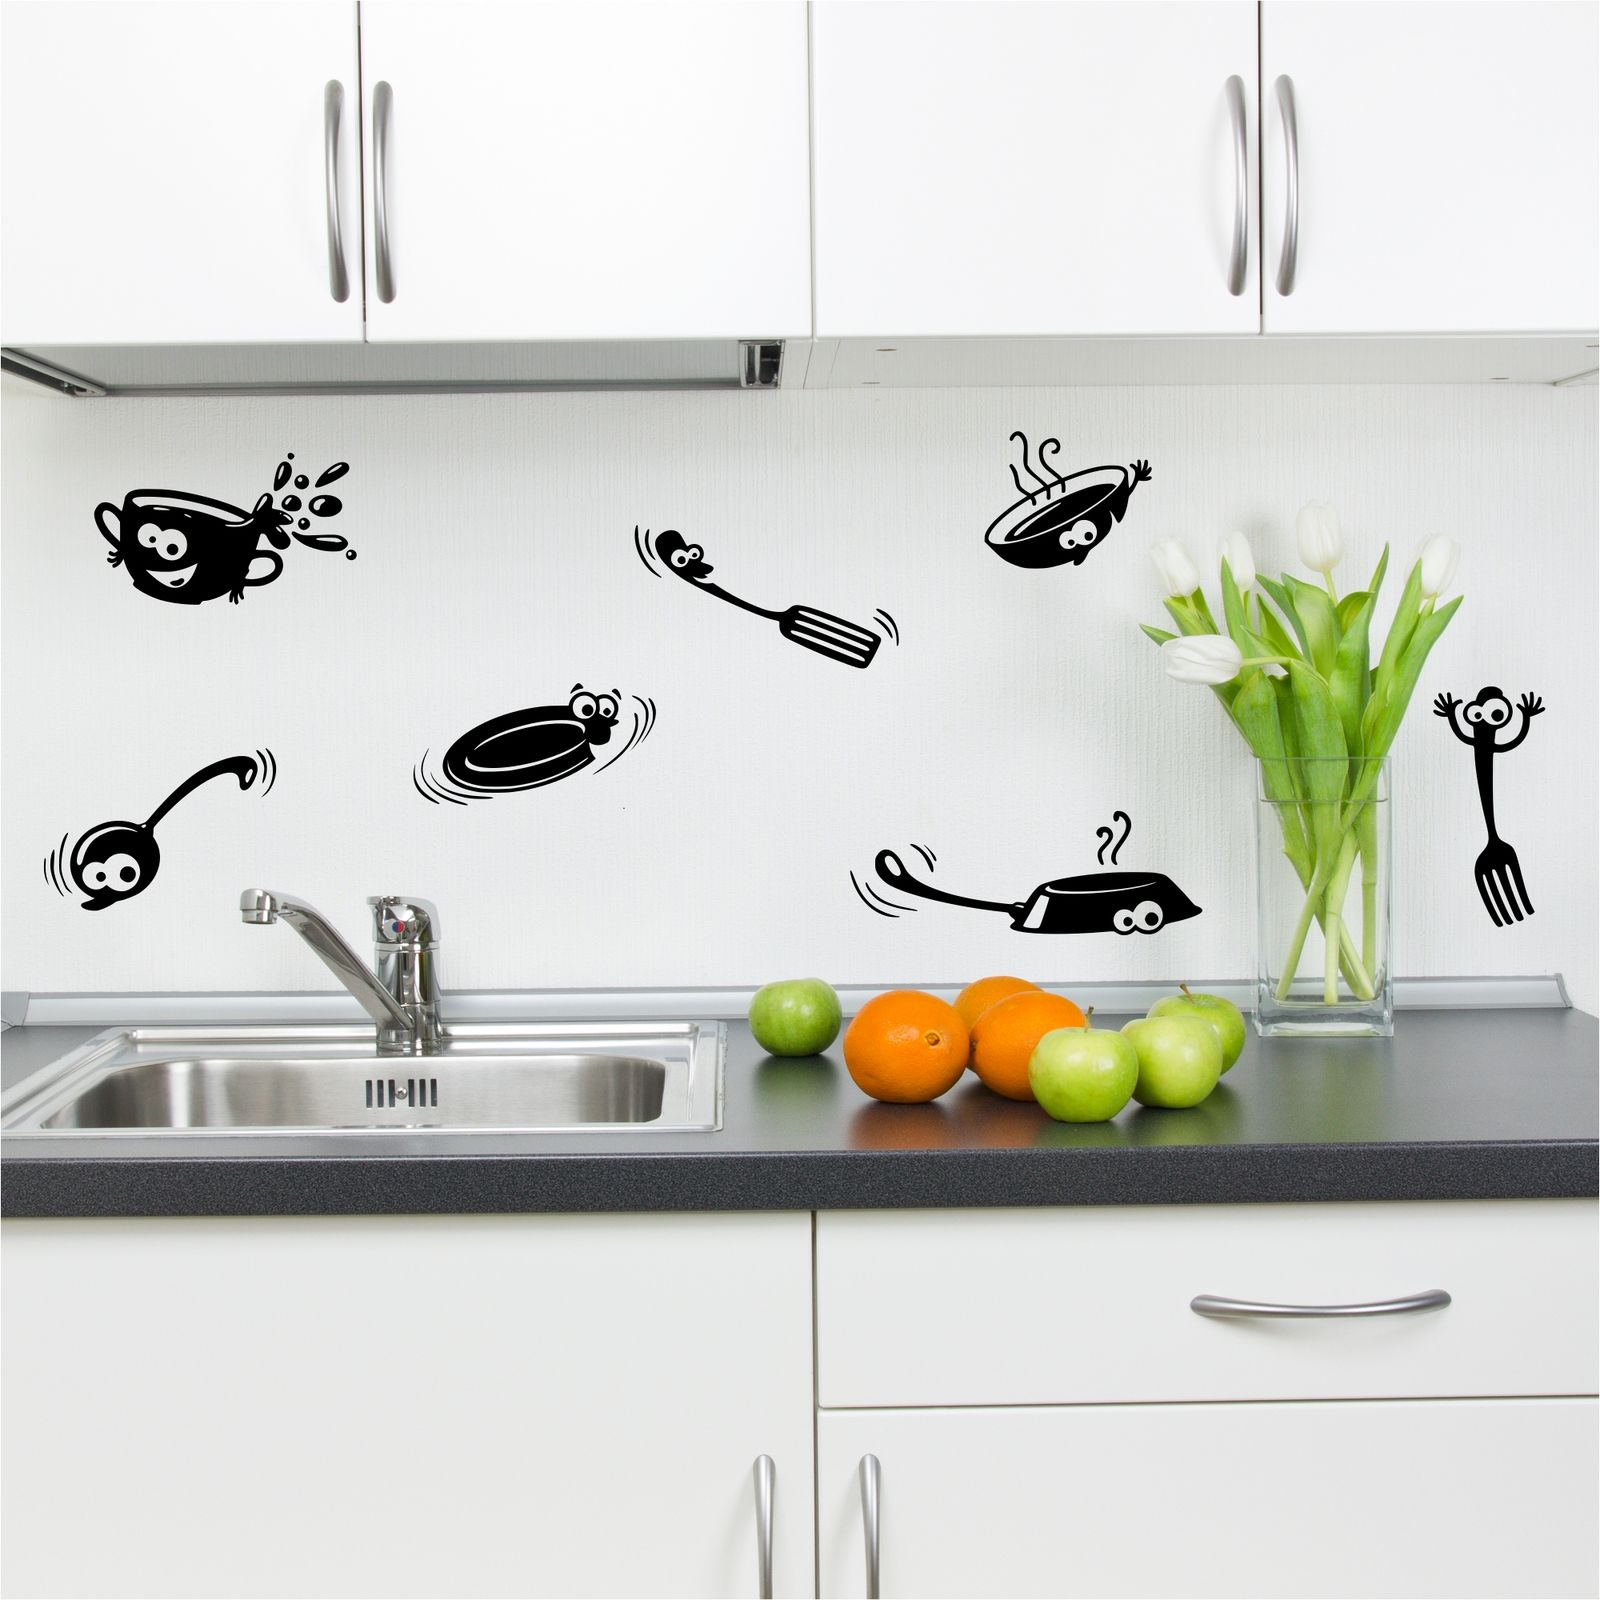 Stickers Porte De Placard Cuisine Placard Cuisine Cartoon Stickers Autocollant De Vinyle